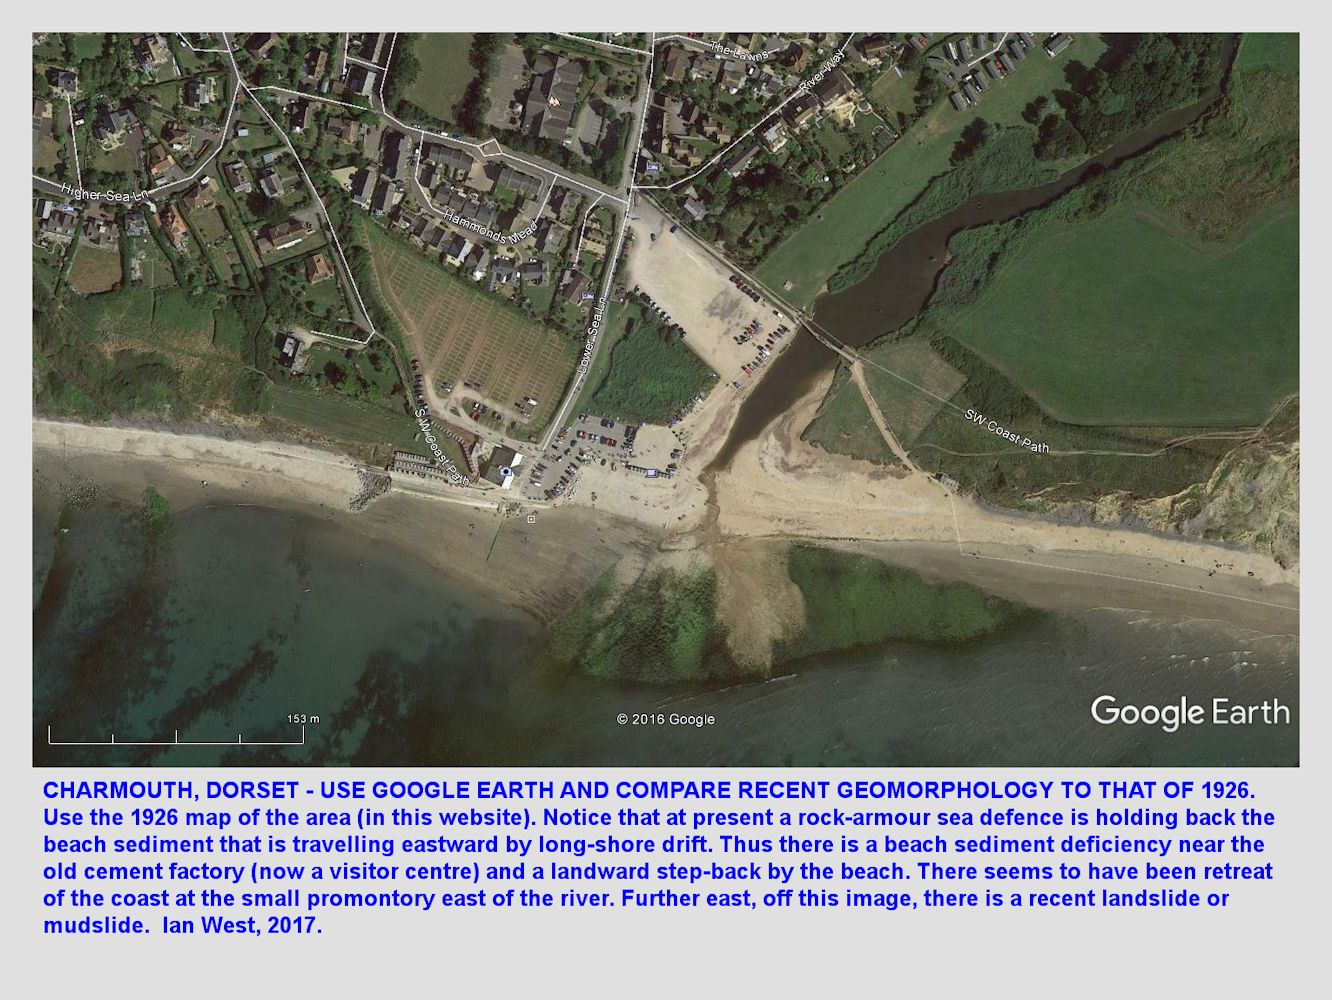 Go to GE and compare a modern aerial photograph with the 1926 map of the mouth of the Char at Charmouth, Dorset